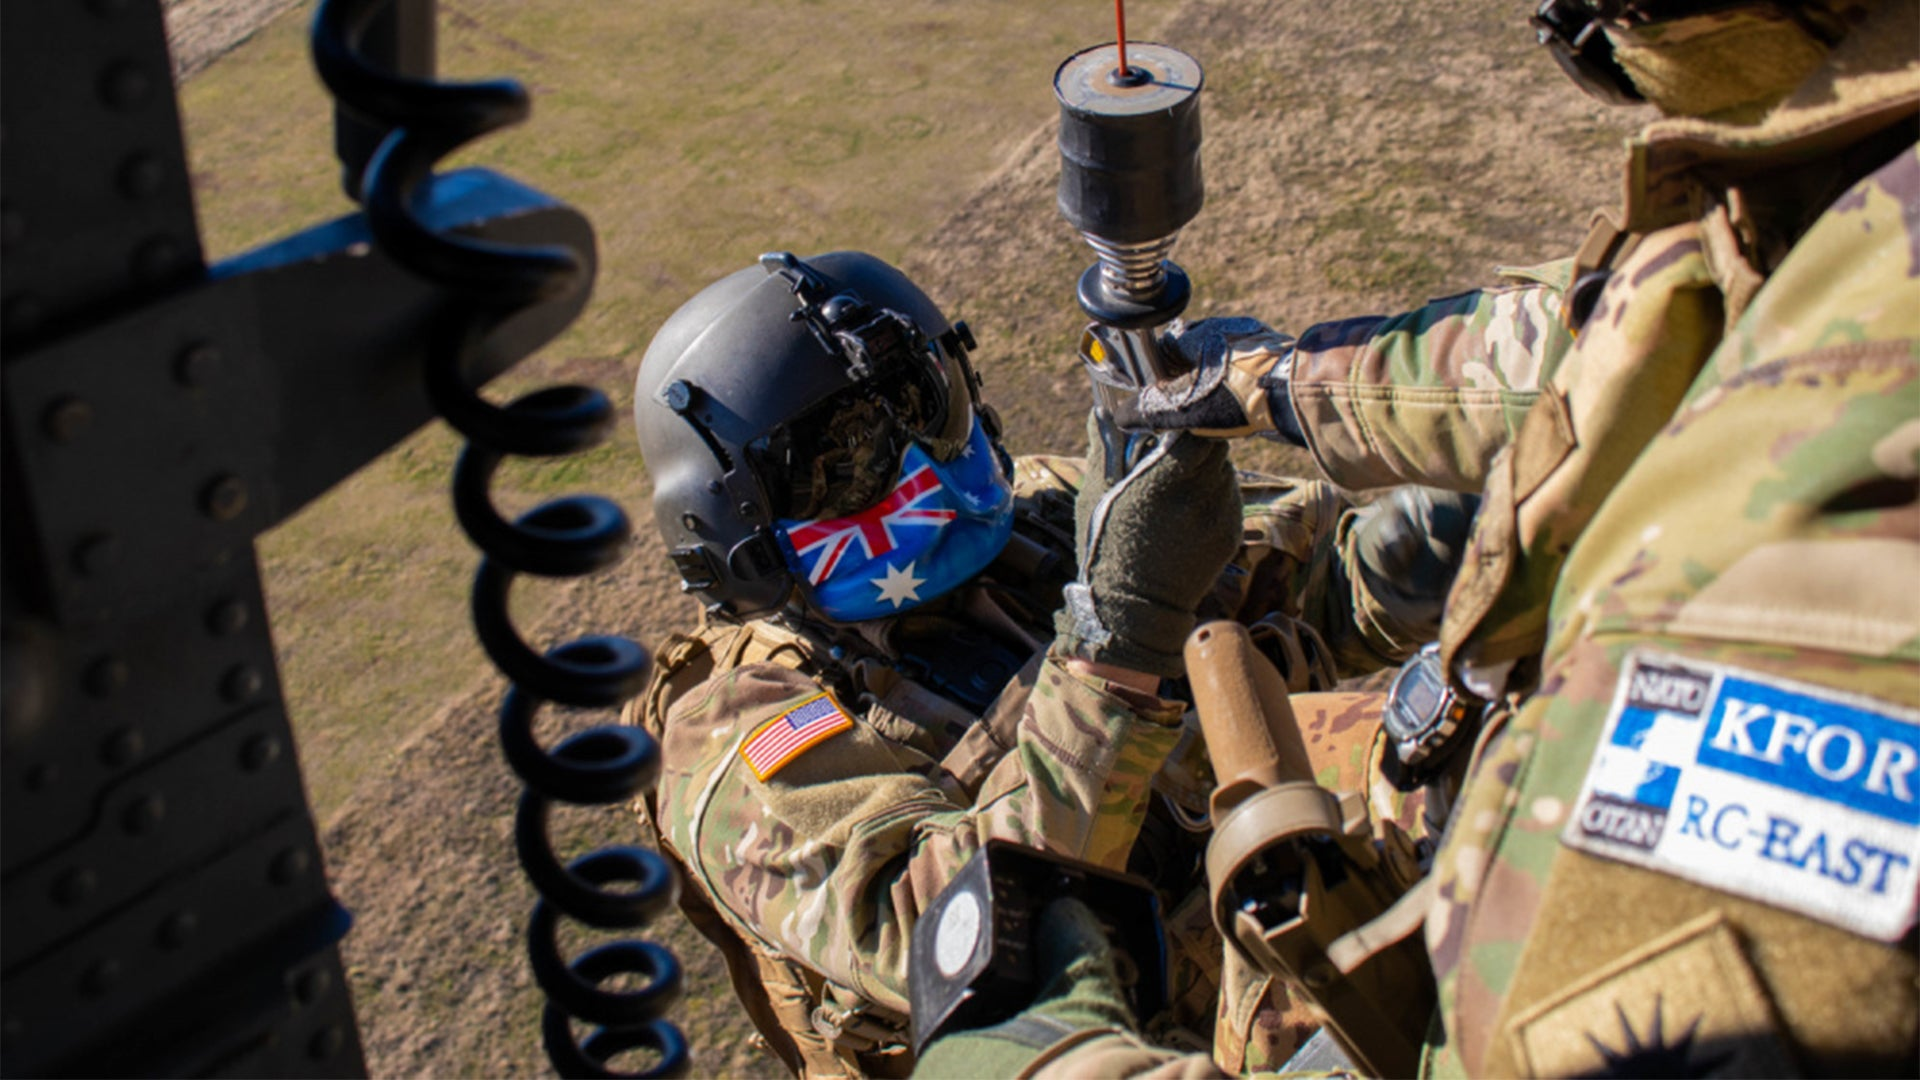 Here's the fascinating story behind this Army paramedic's distinct flight mask